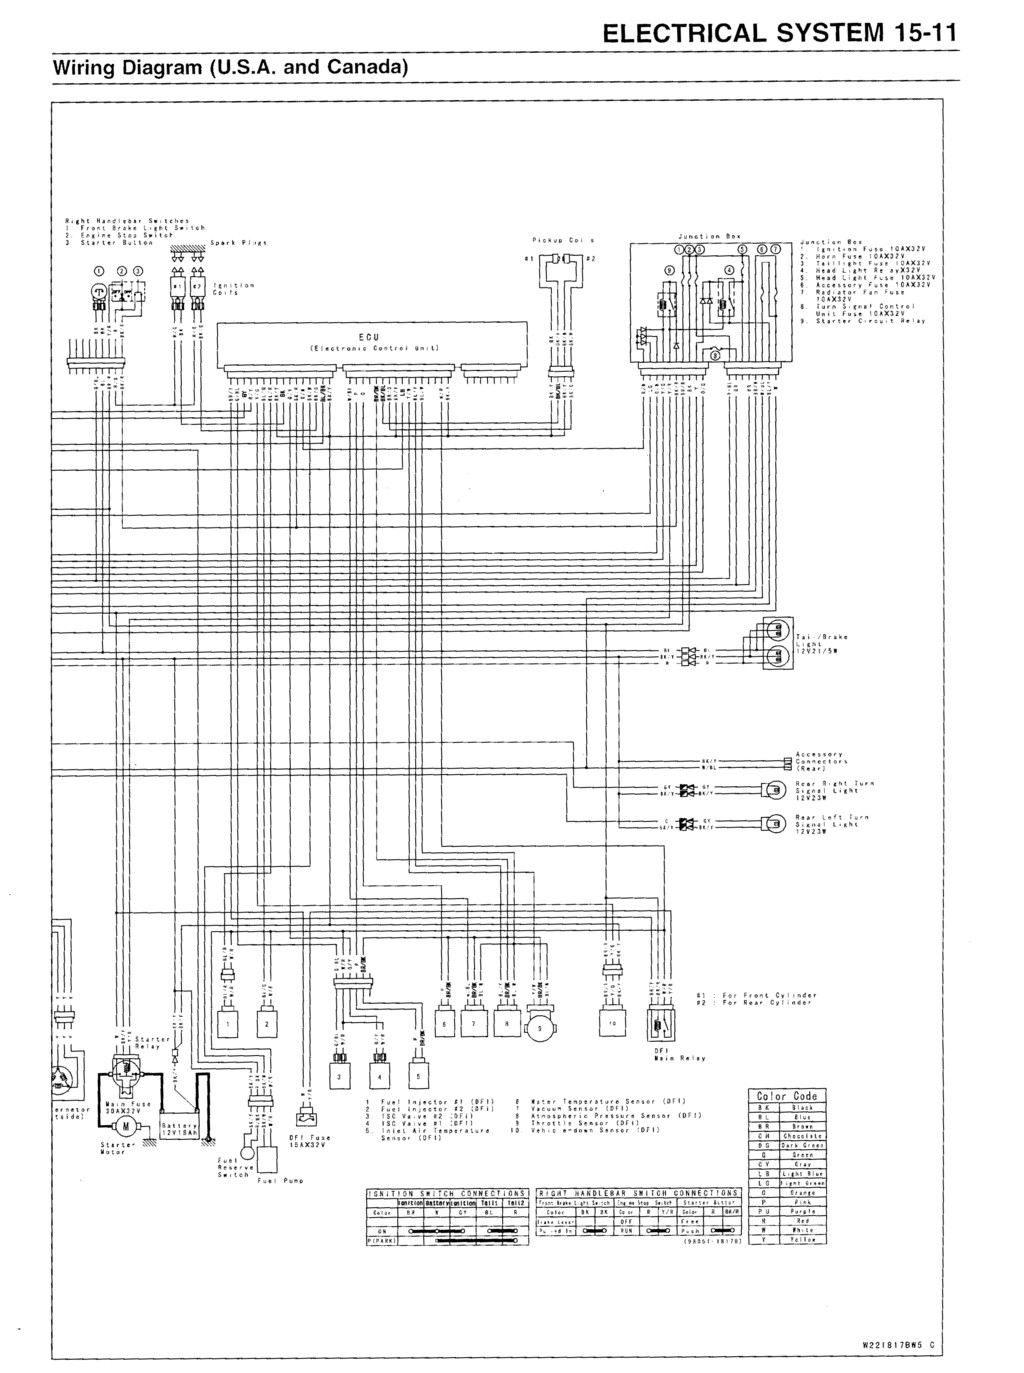 Kawasaki Z750 Wiring Diagram | Wiring Diagram on